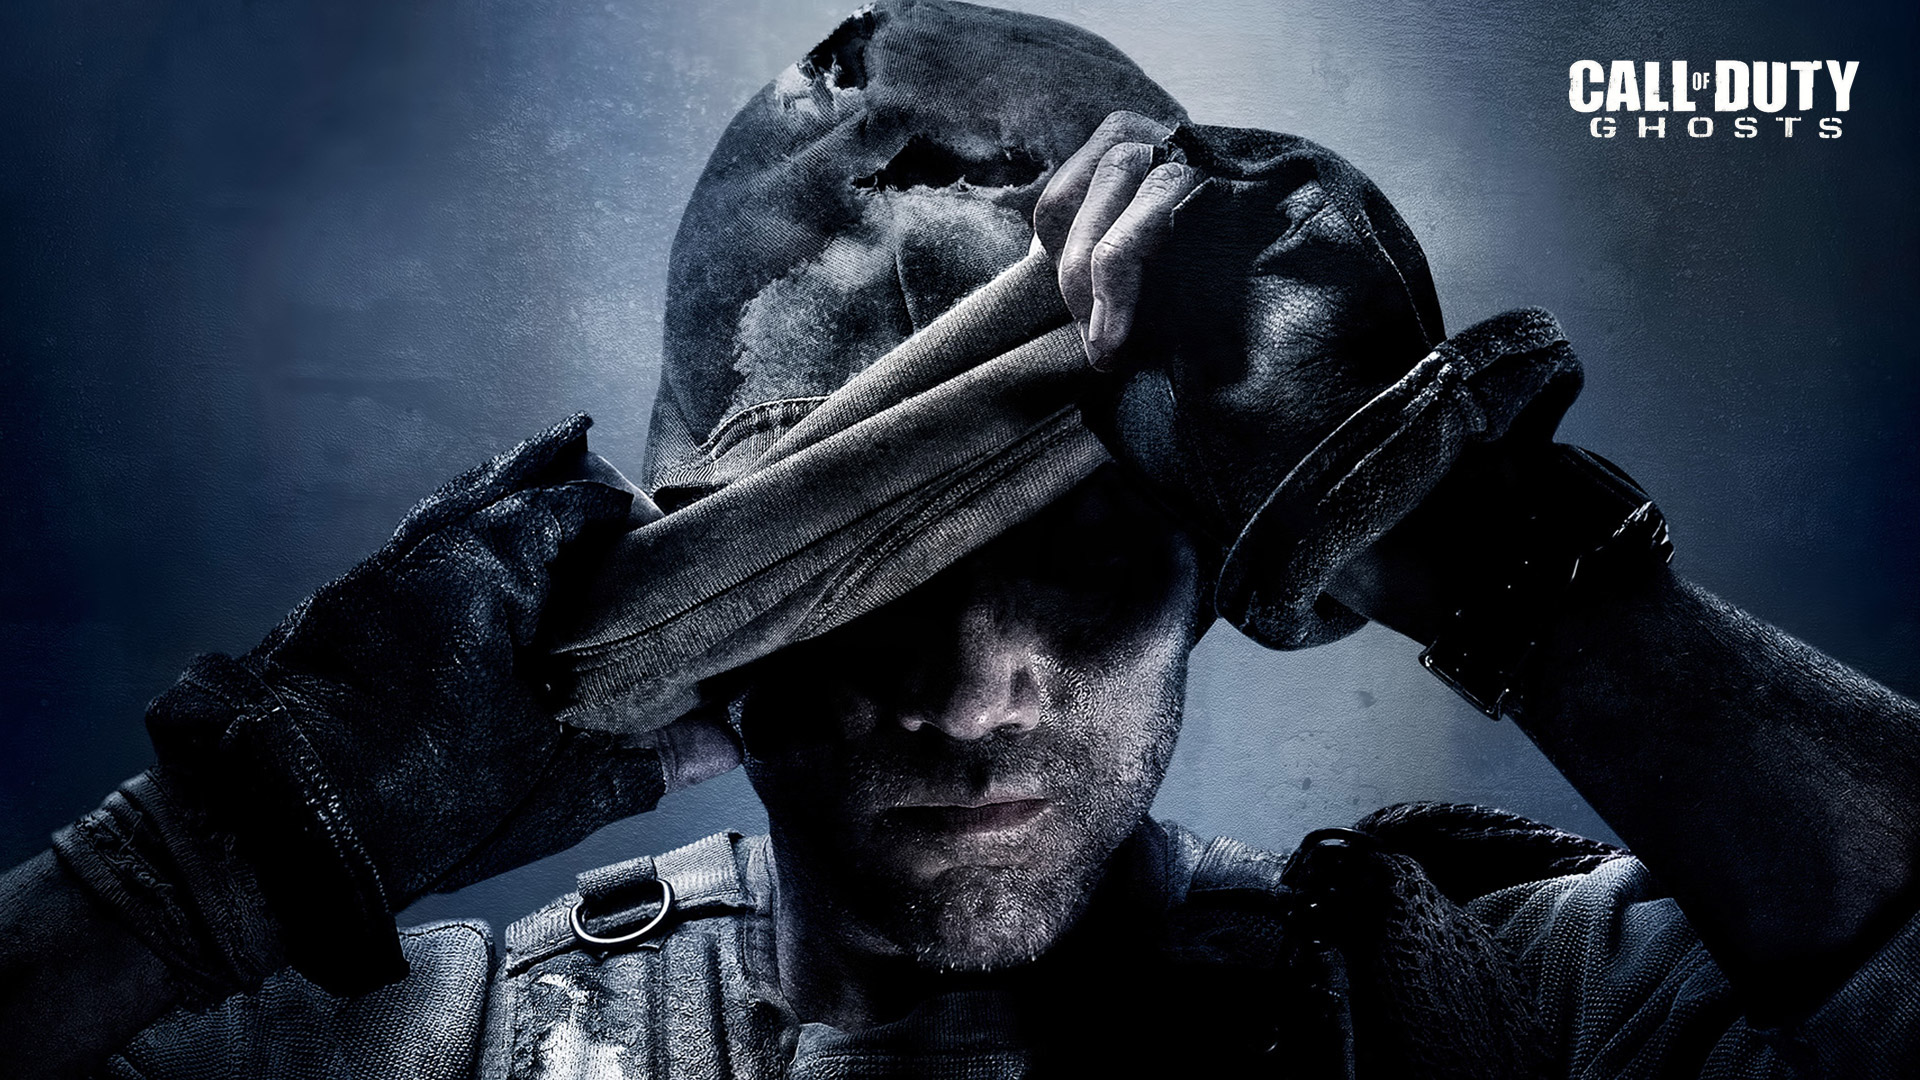 Call of Duty Ghosts wallpaper 7